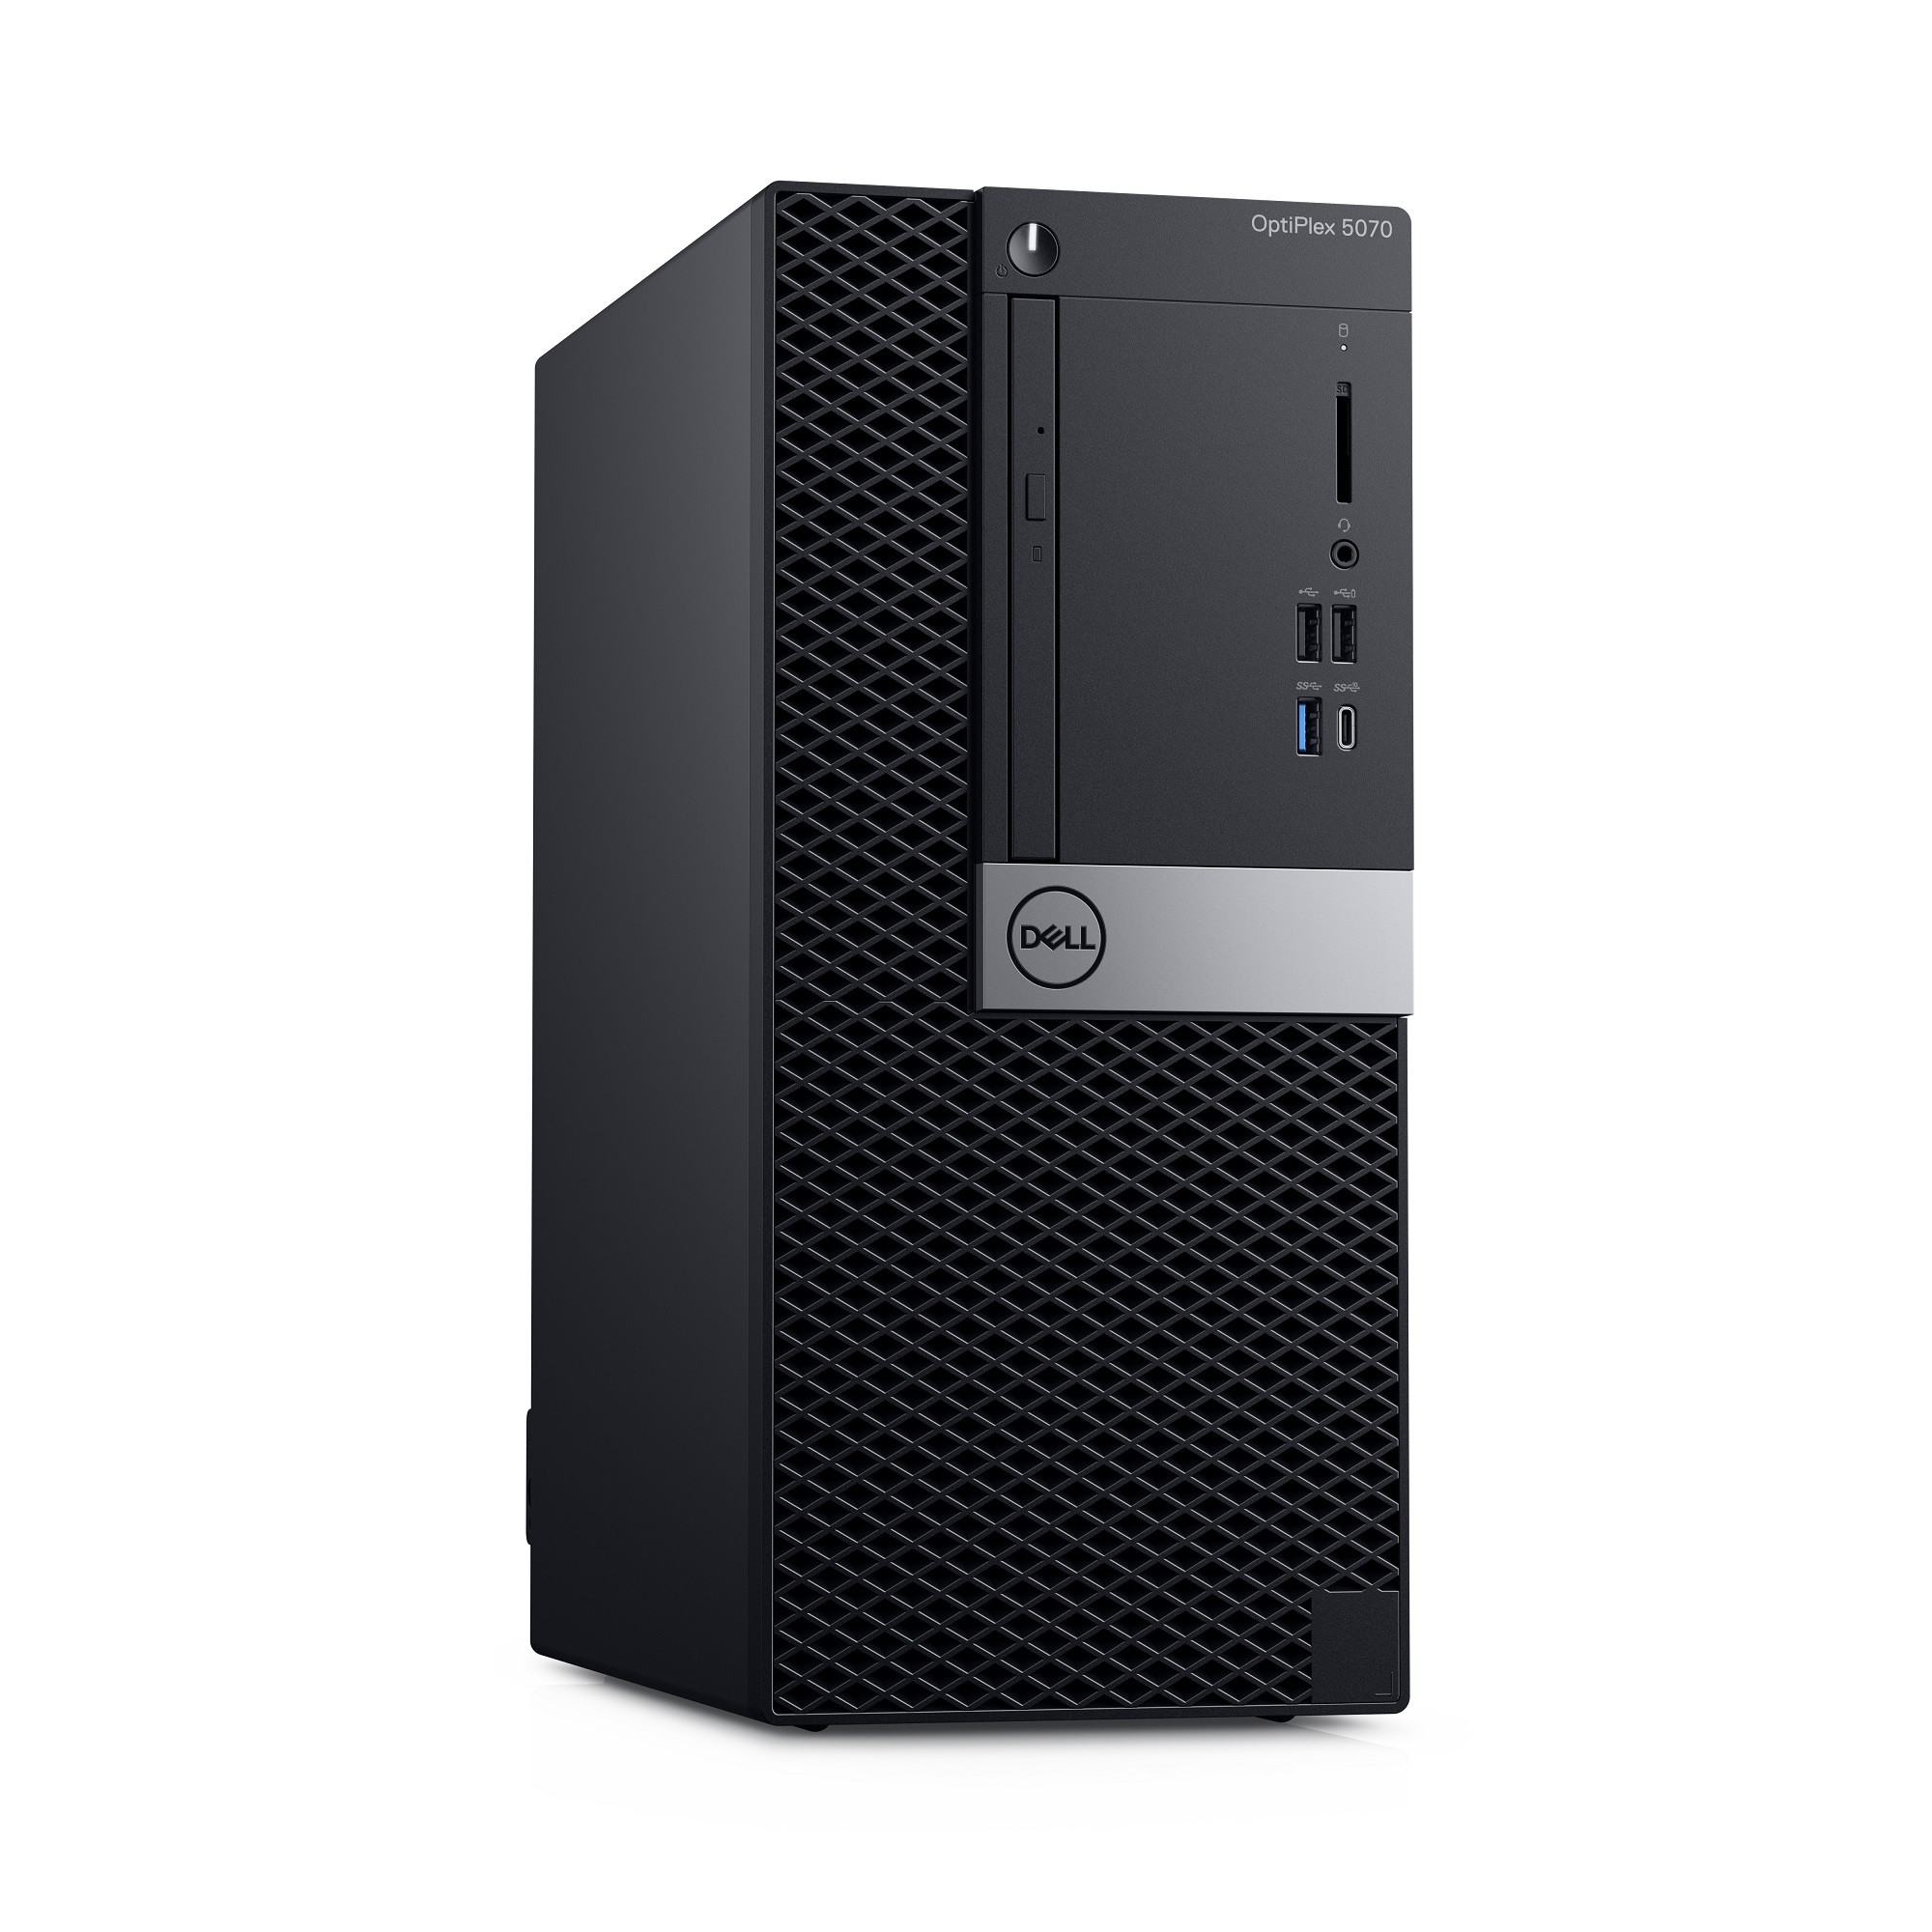 Komputer DELL OptiPlex 5070 MT i3-9100 8GB 1TB DVDRW W10Pro 3YProSupport Plus